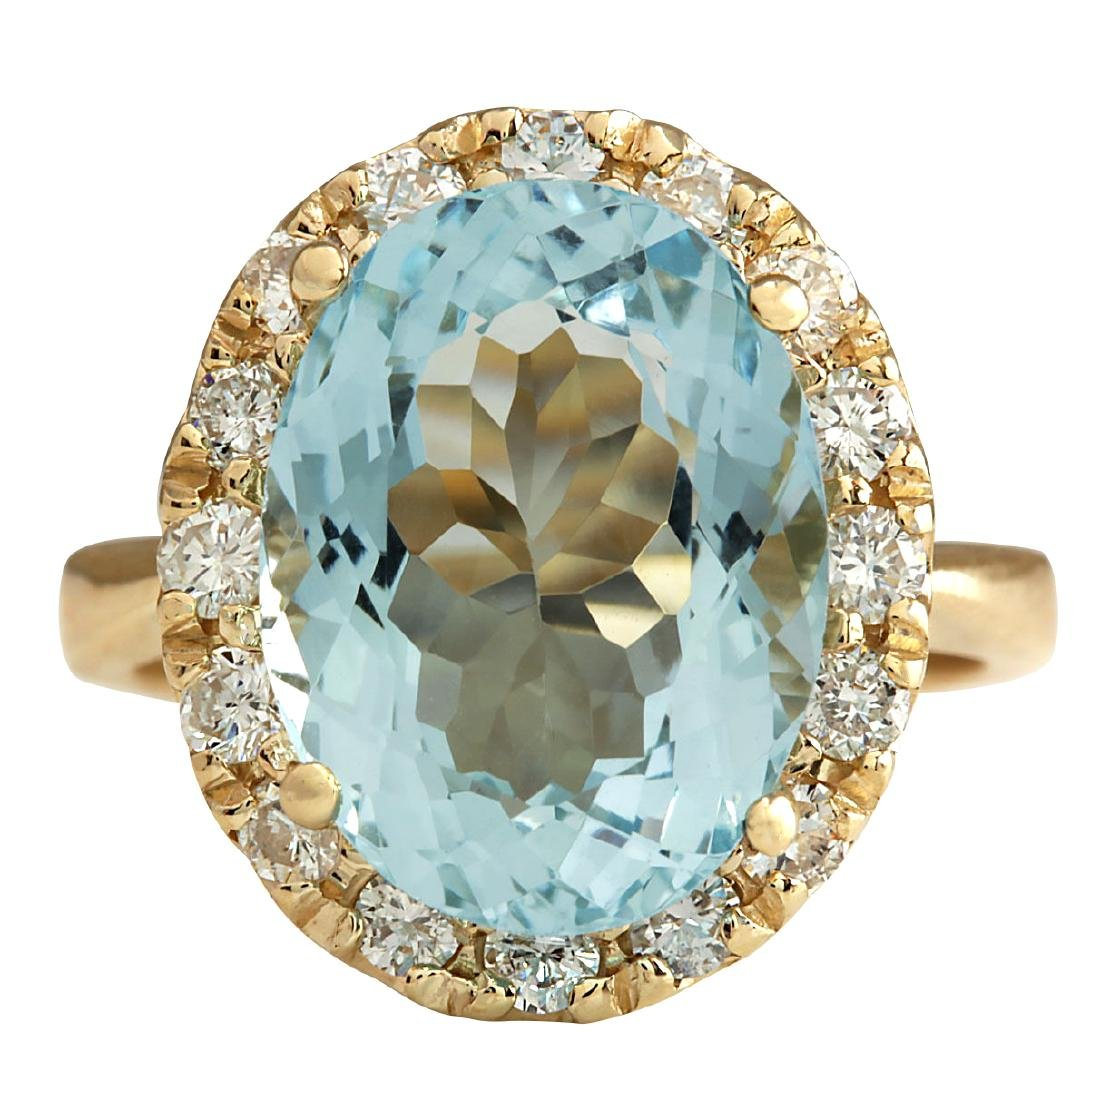 5.32CTW Natural Aquamarine And Diamond Ring 18K Solid